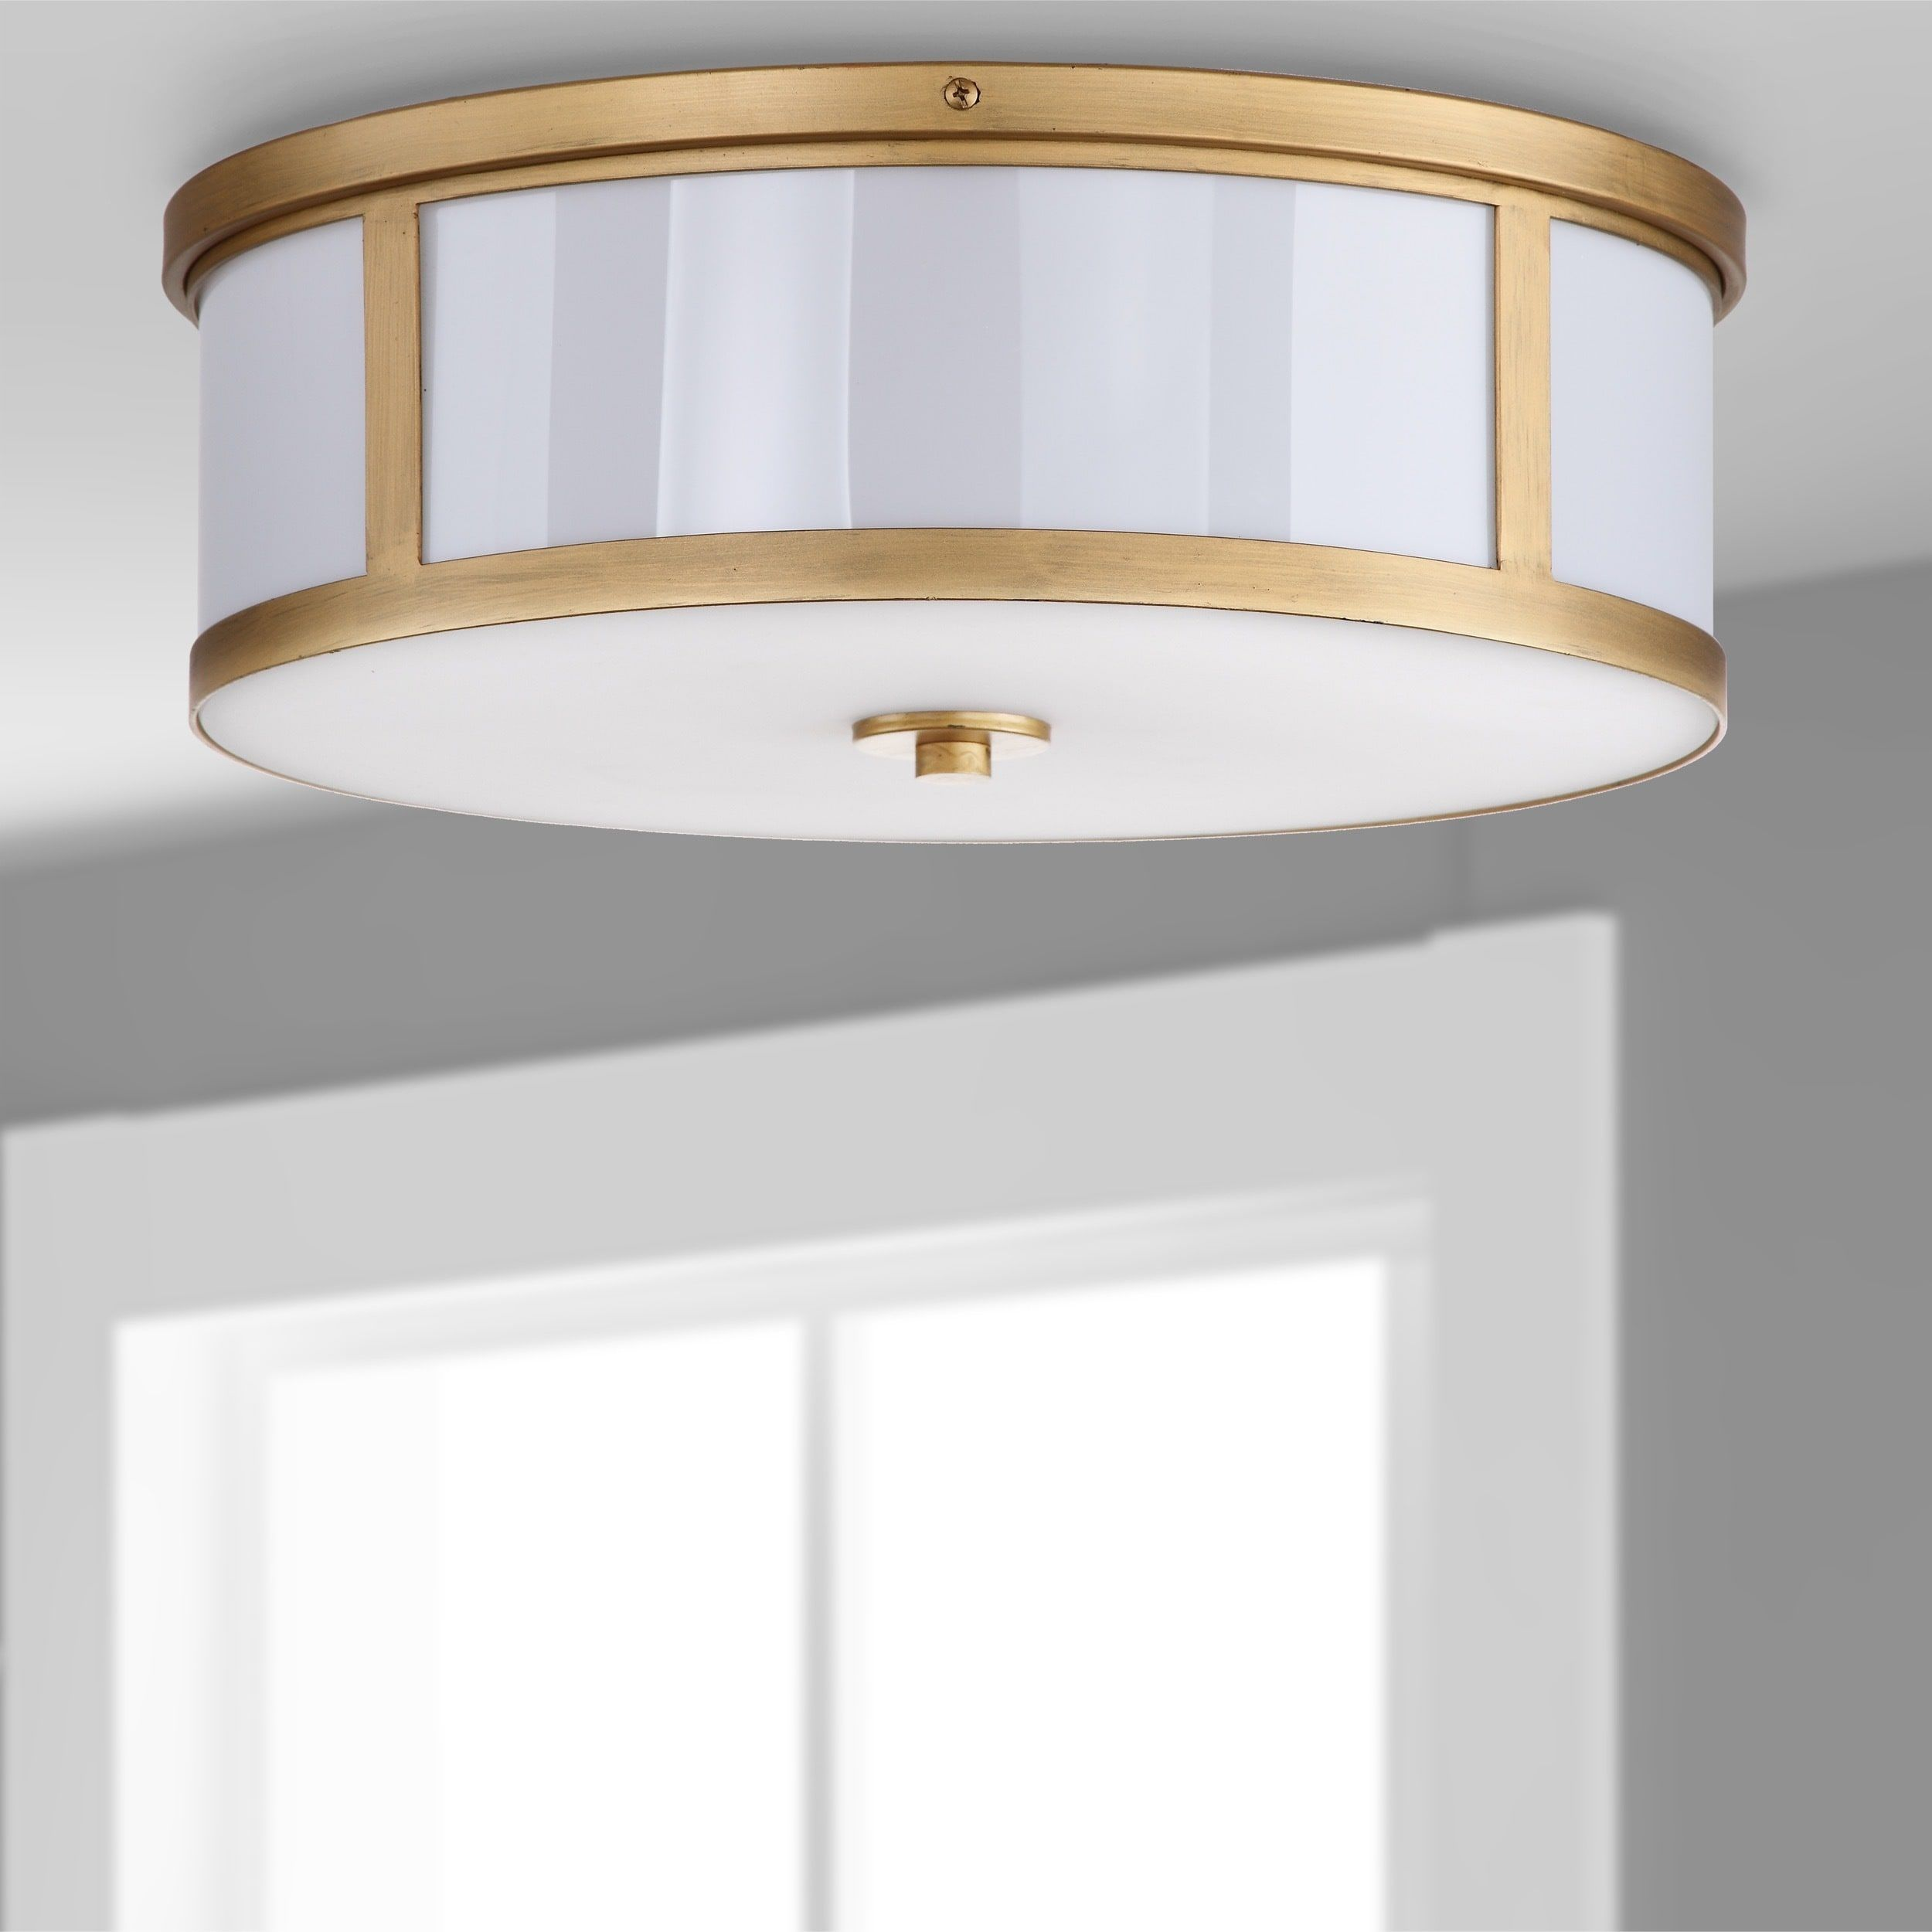 Safavieh Lighting 6 Inch 2 Light Avery Gold Ceiling Drum Light